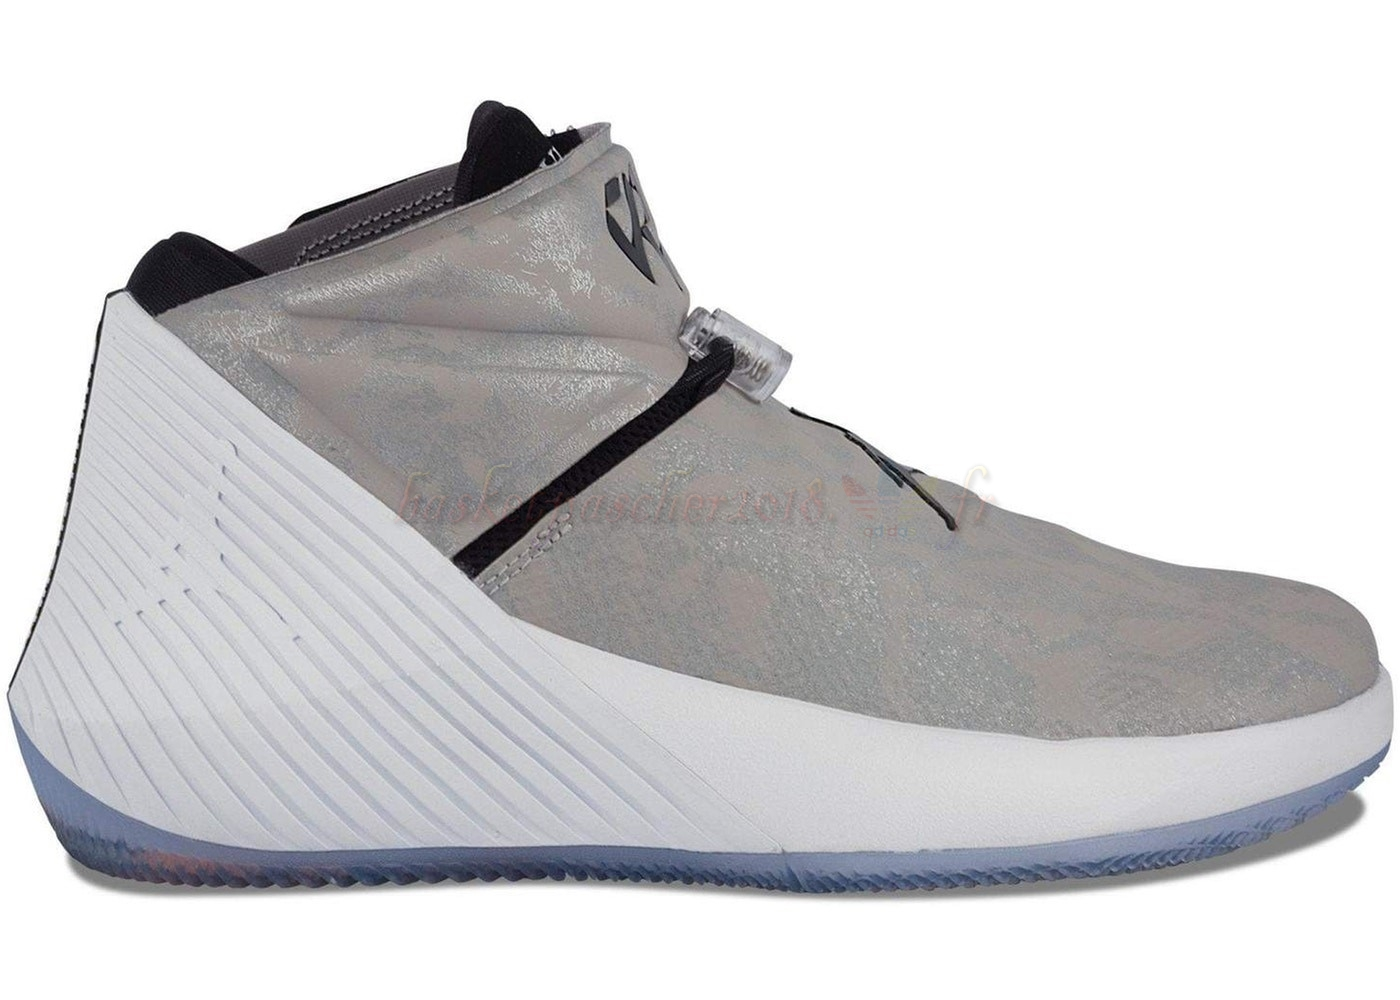 "Vente Chaude Chaussures De Basketball Homme Jordan Why Not Zer0.1 ""Fashion King"" Gris (aa2510-034) Pas Cher"